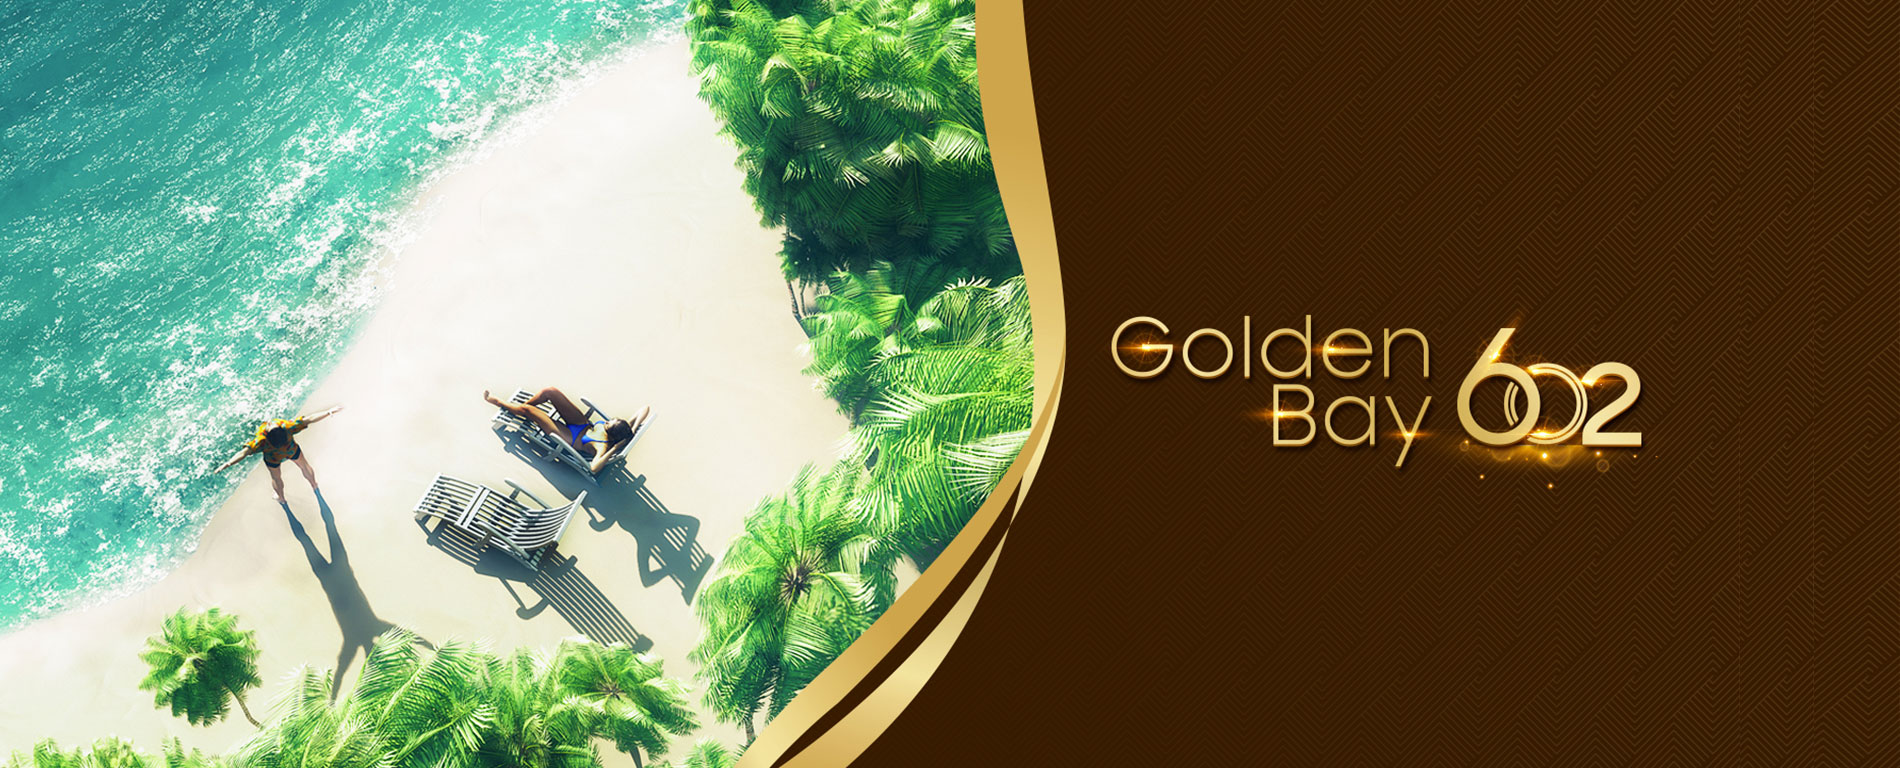 Golden Bay 602